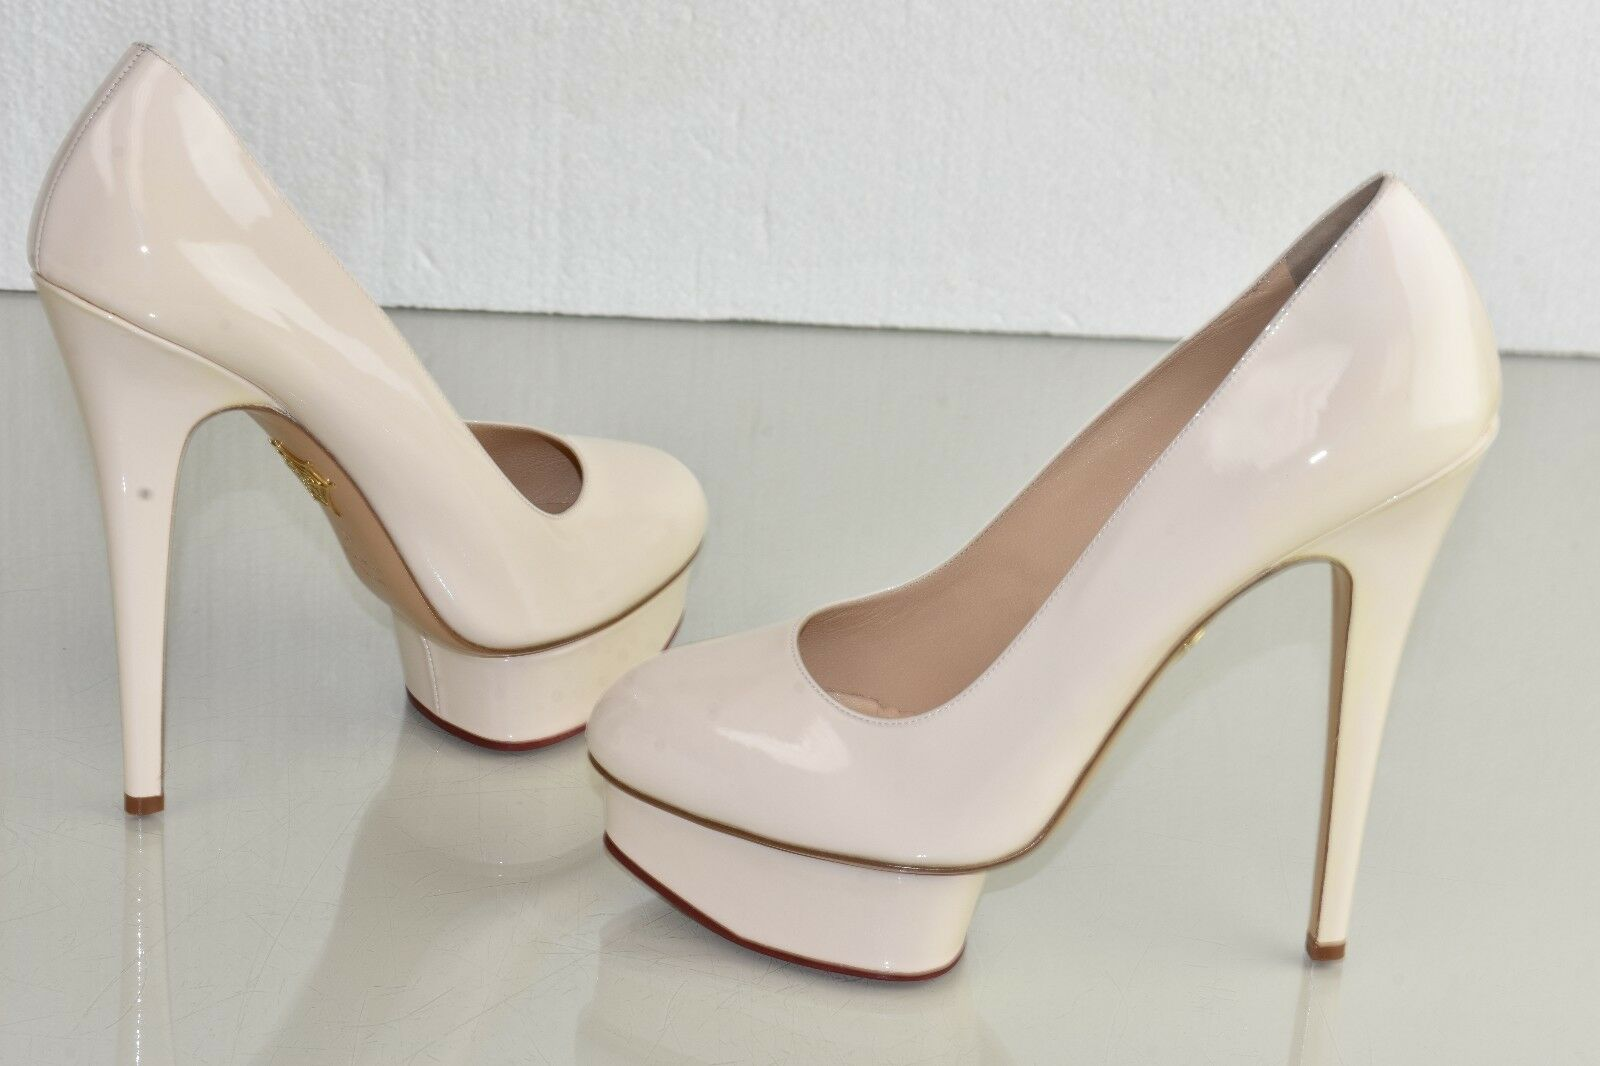 845 New Charlotte Olympia Olympia Olympia DOLLY Platform Pumps Patent Leather Powder chaussures 40 127976